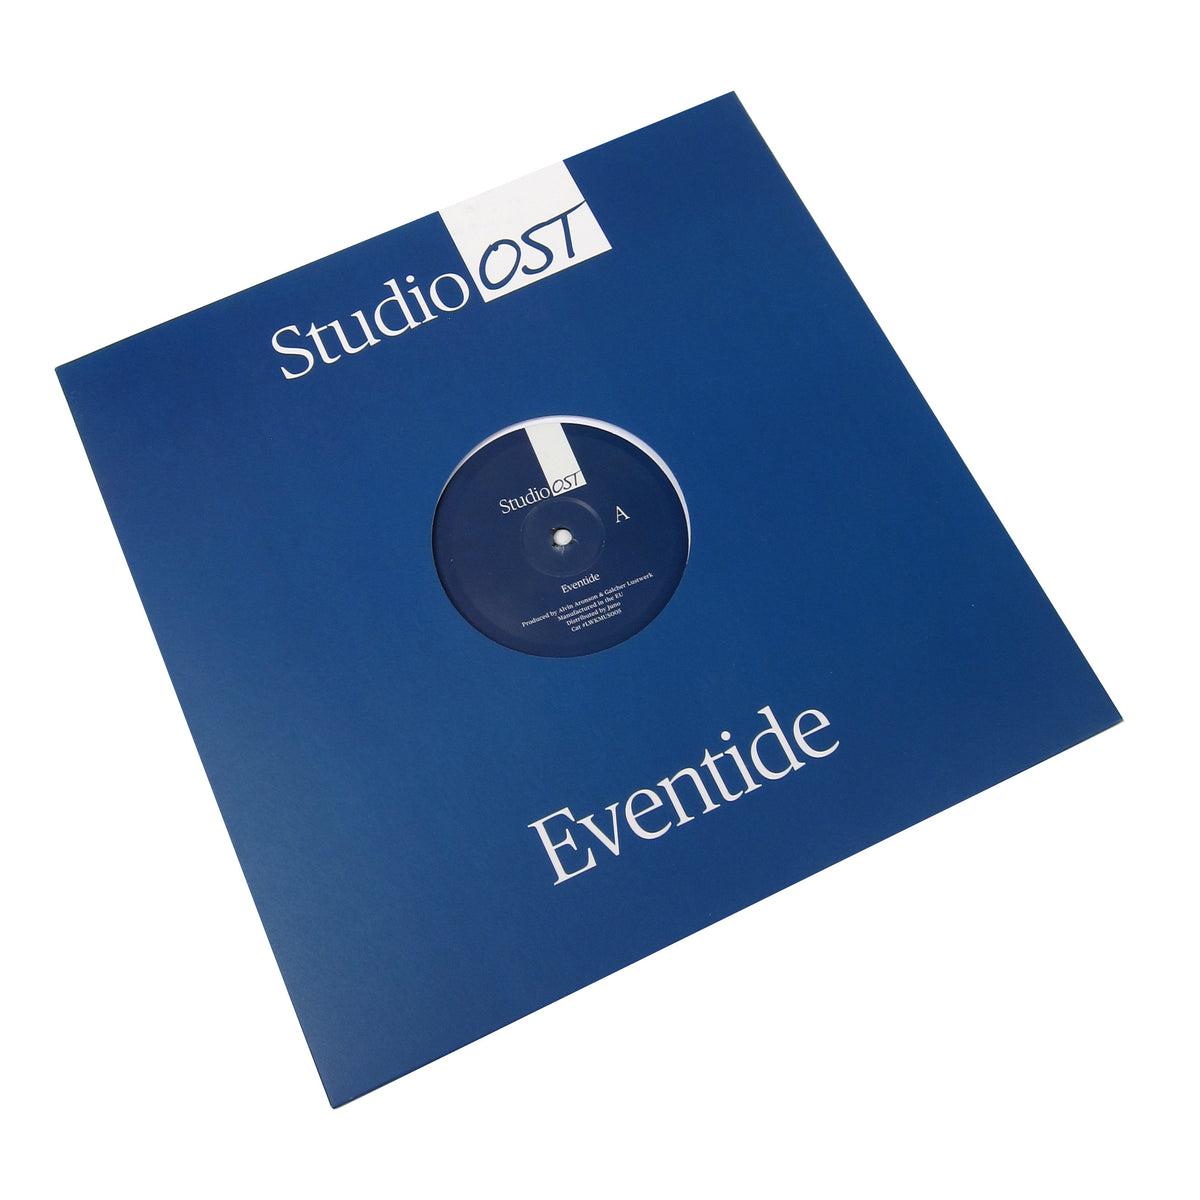 Studio OST: Eventide / Ascension Vinyl 12""